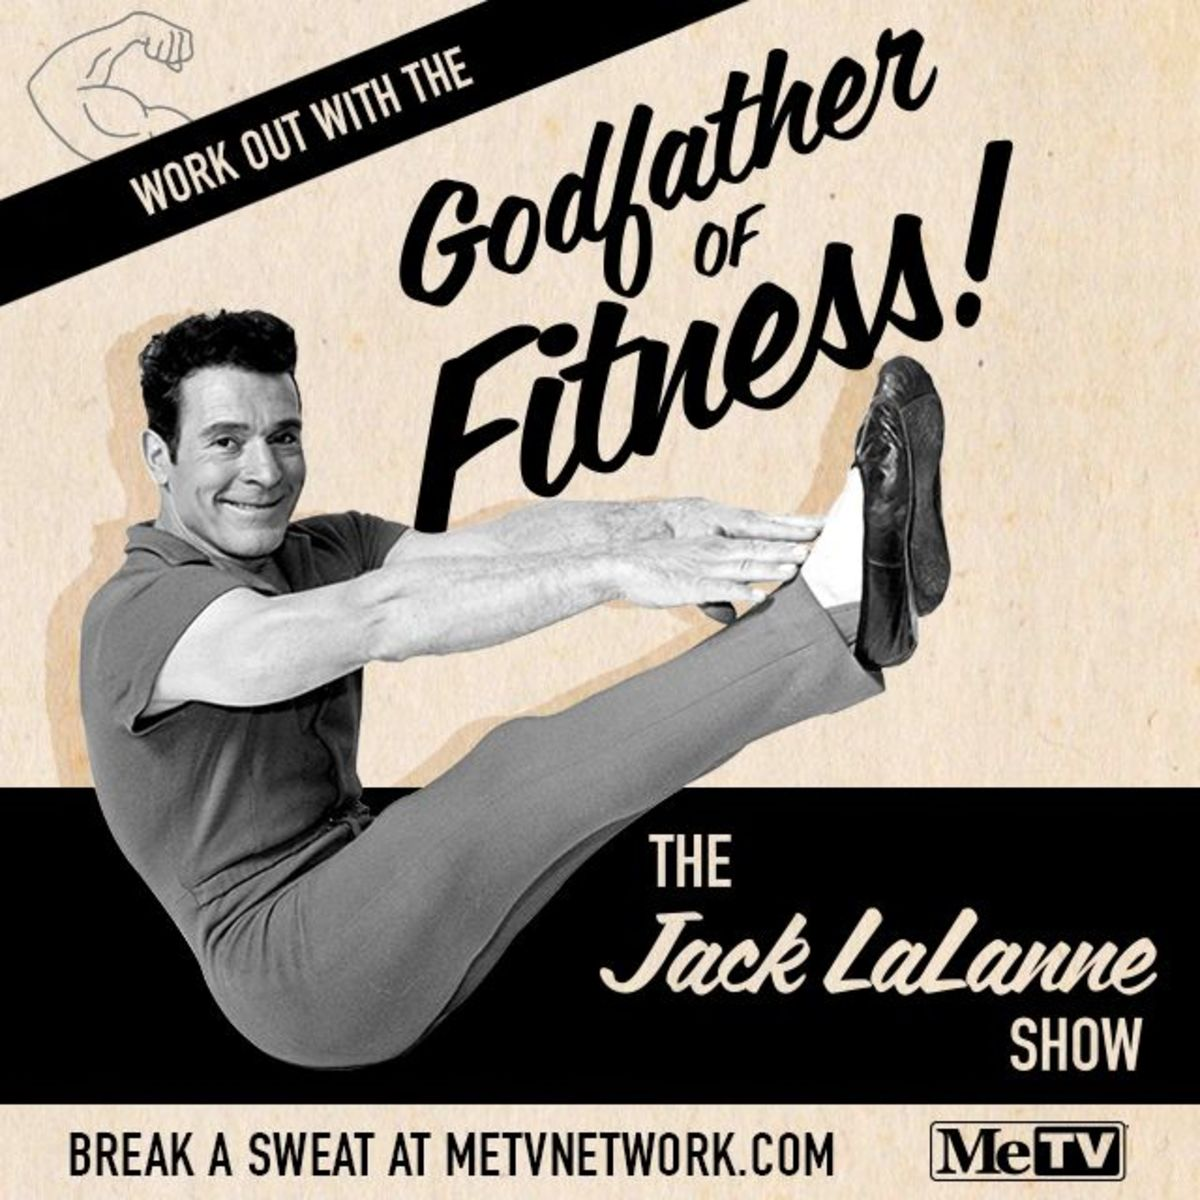 Poster for Jack LaLanne show